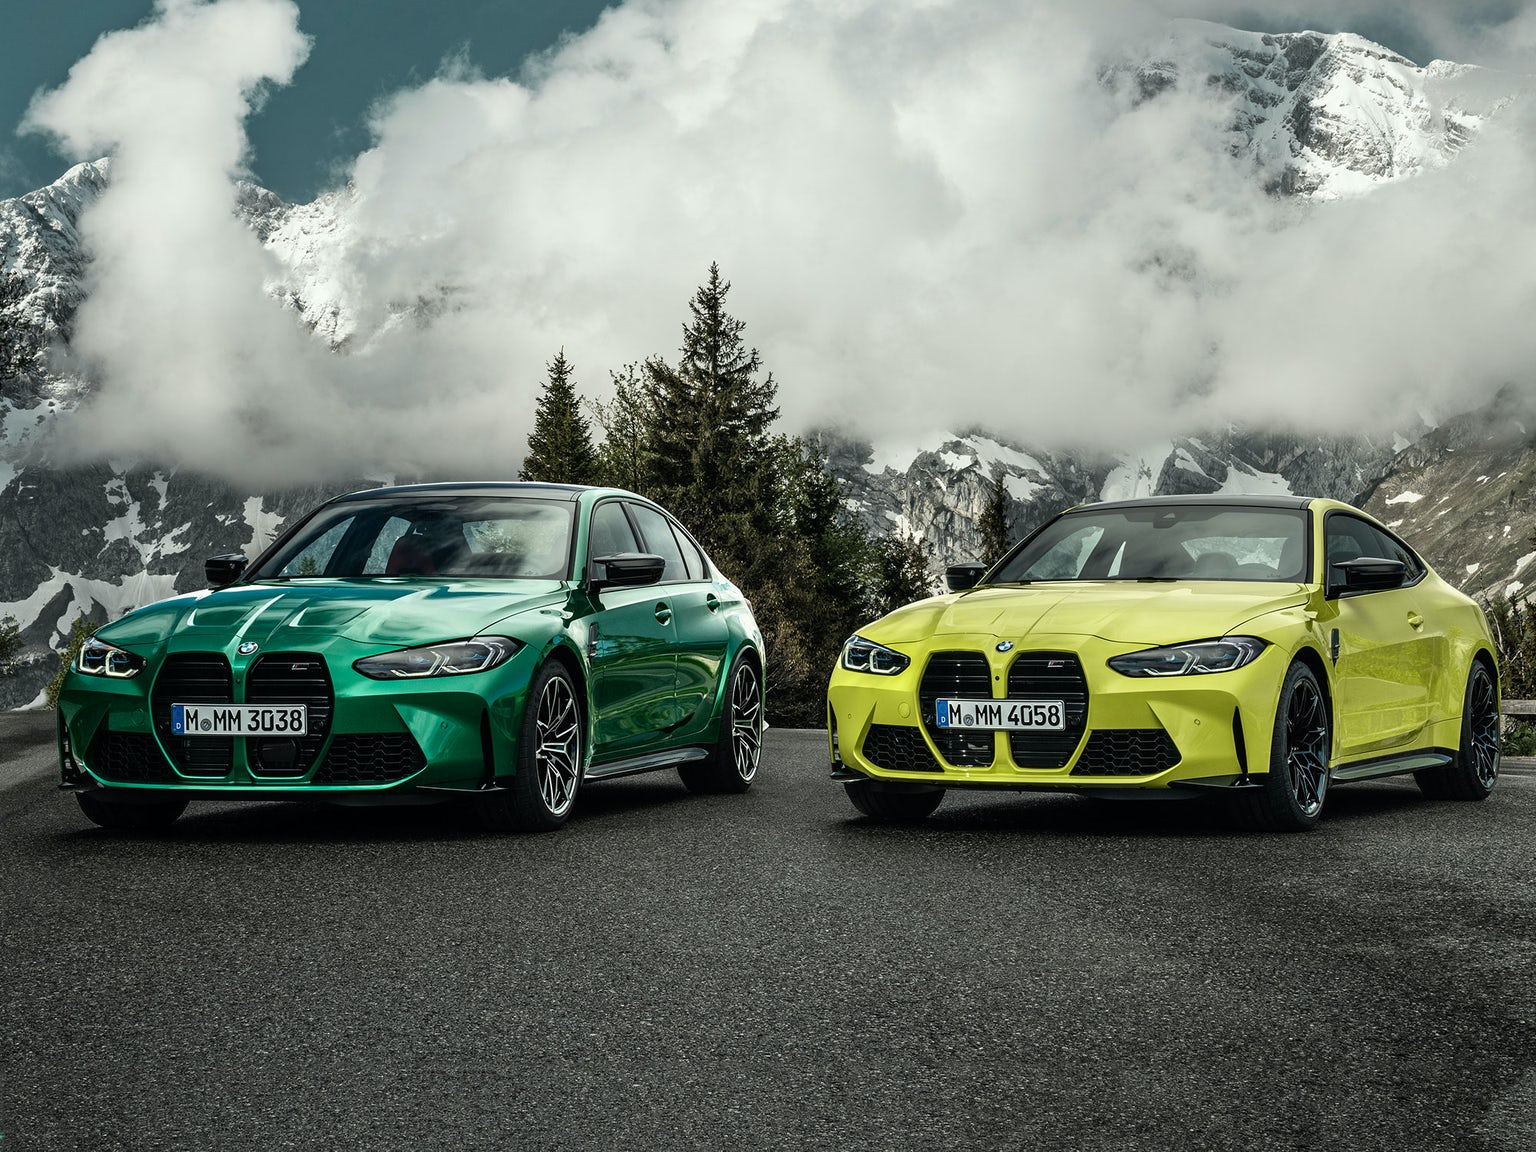 bmw-m3-m4-competition-parked-green-yellow-front-1.jpg